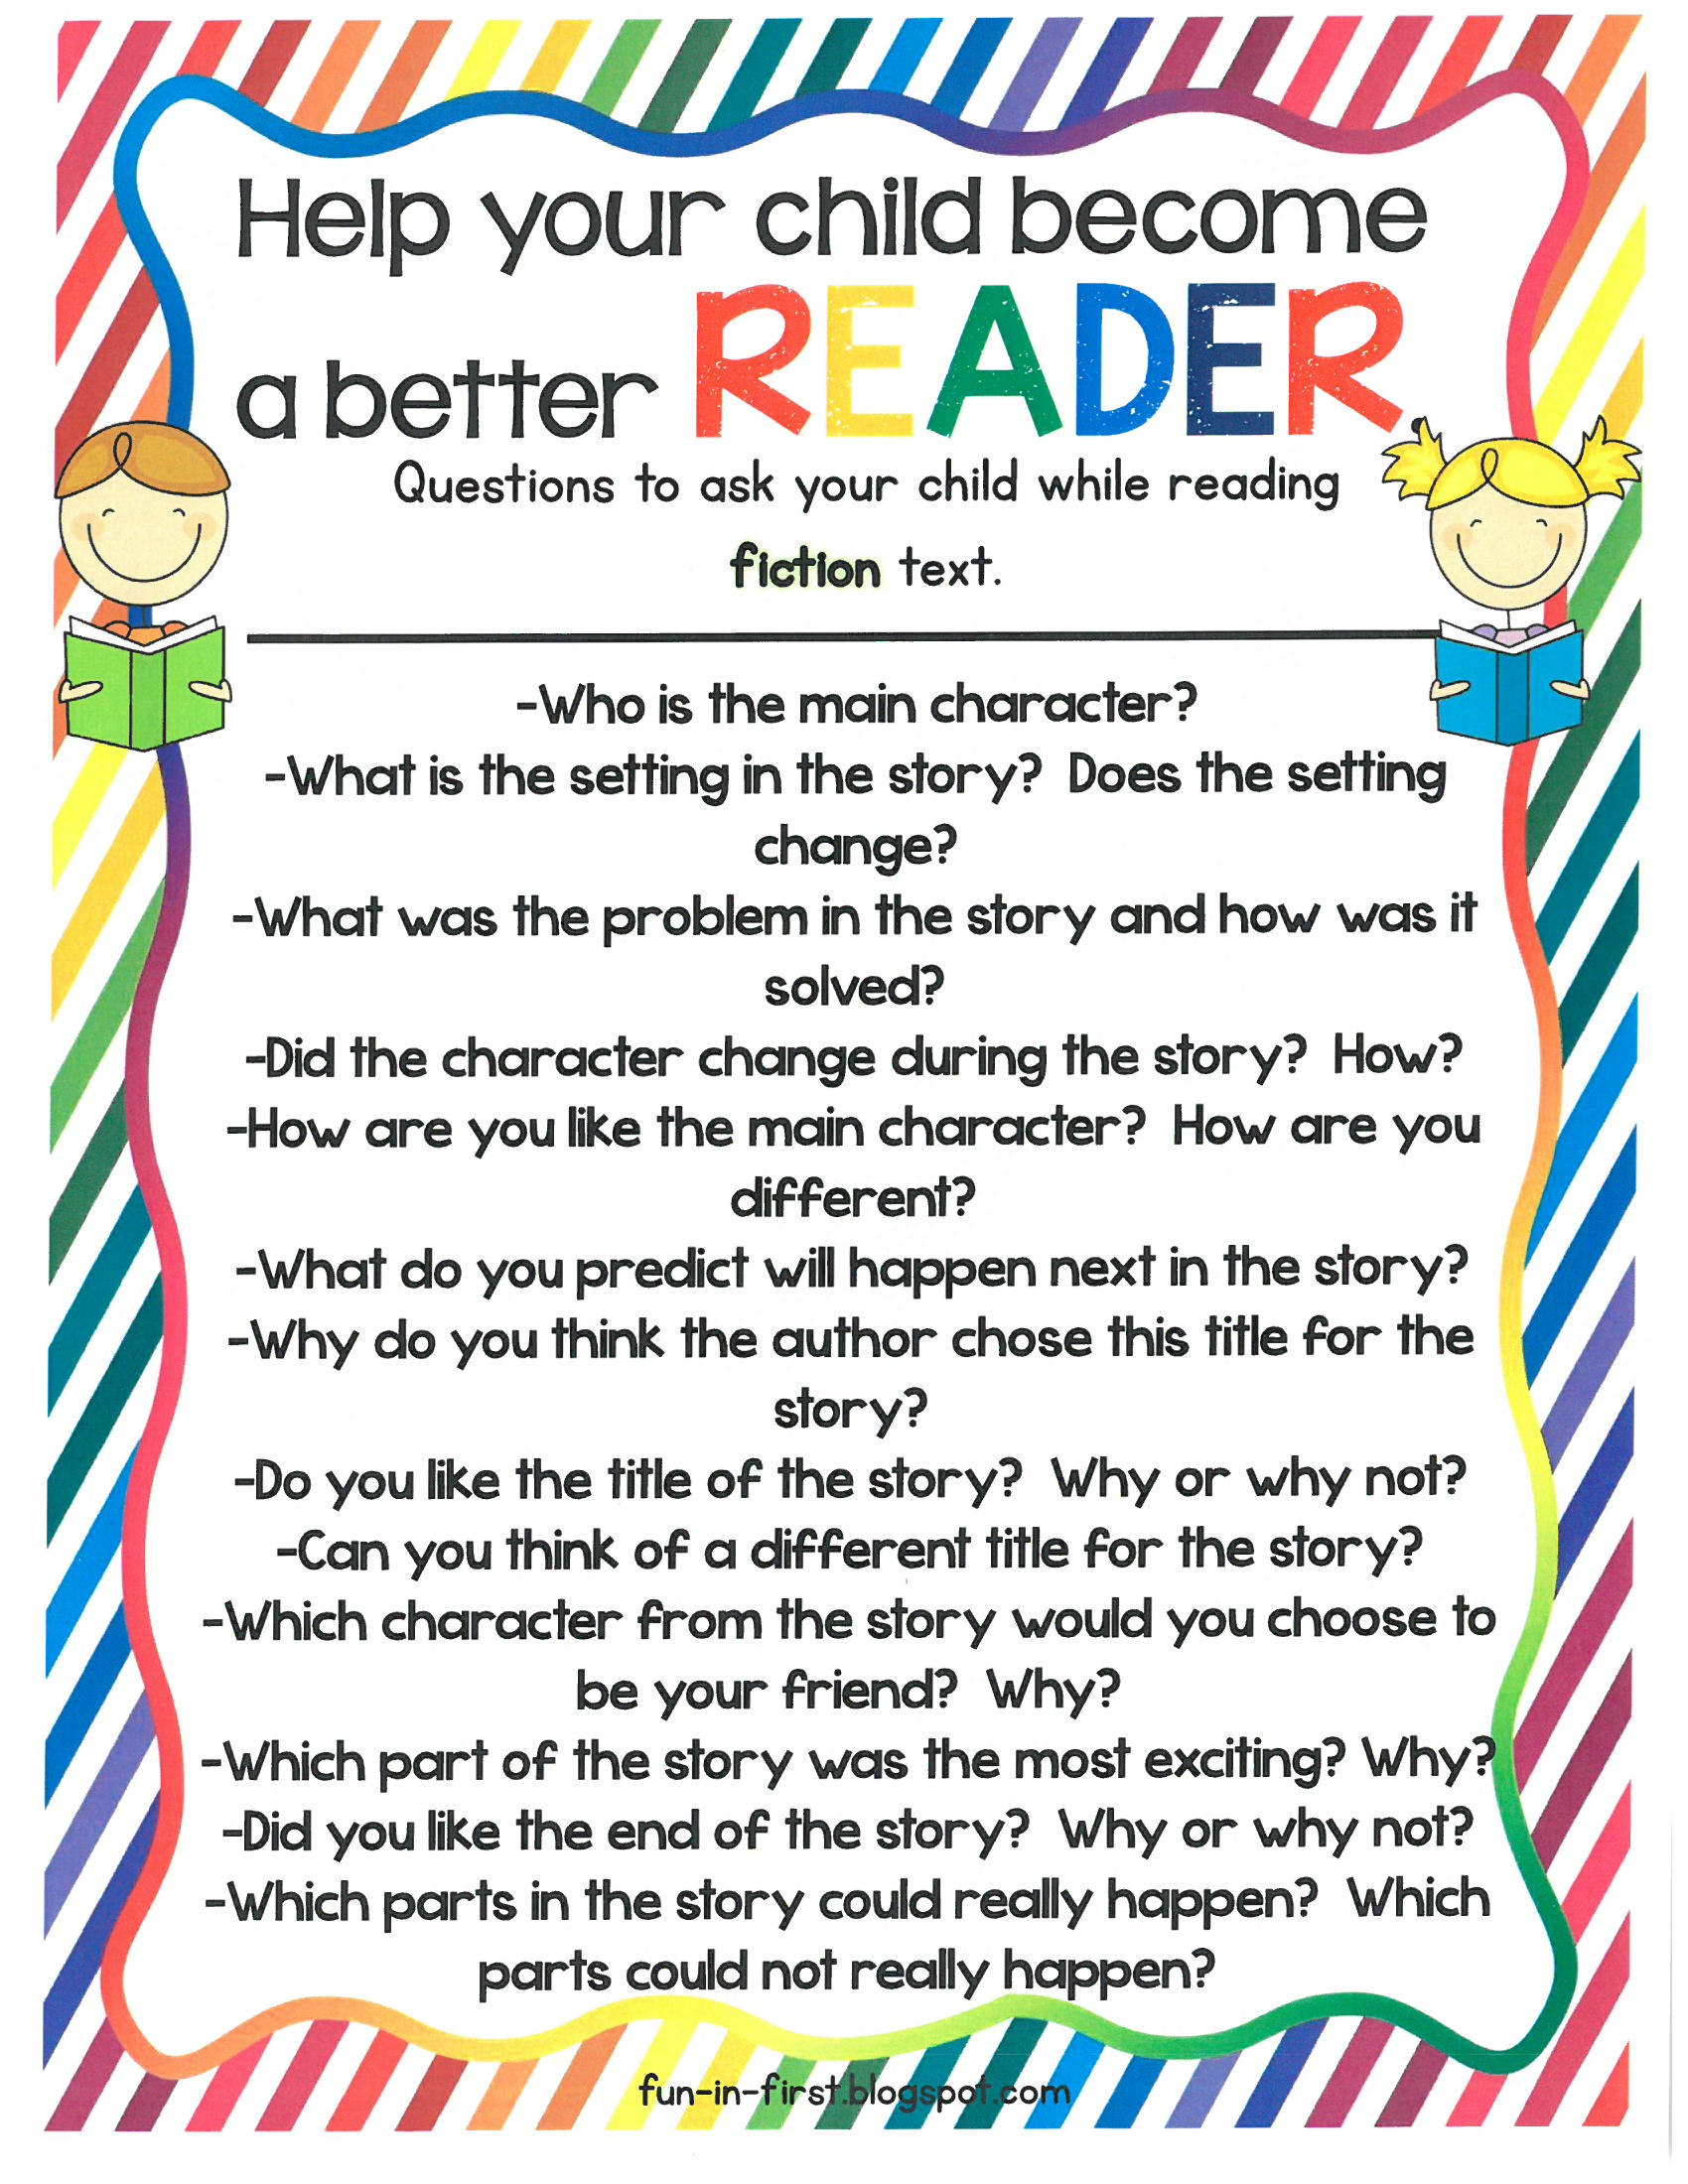 Help your child become a better reader - fiction text